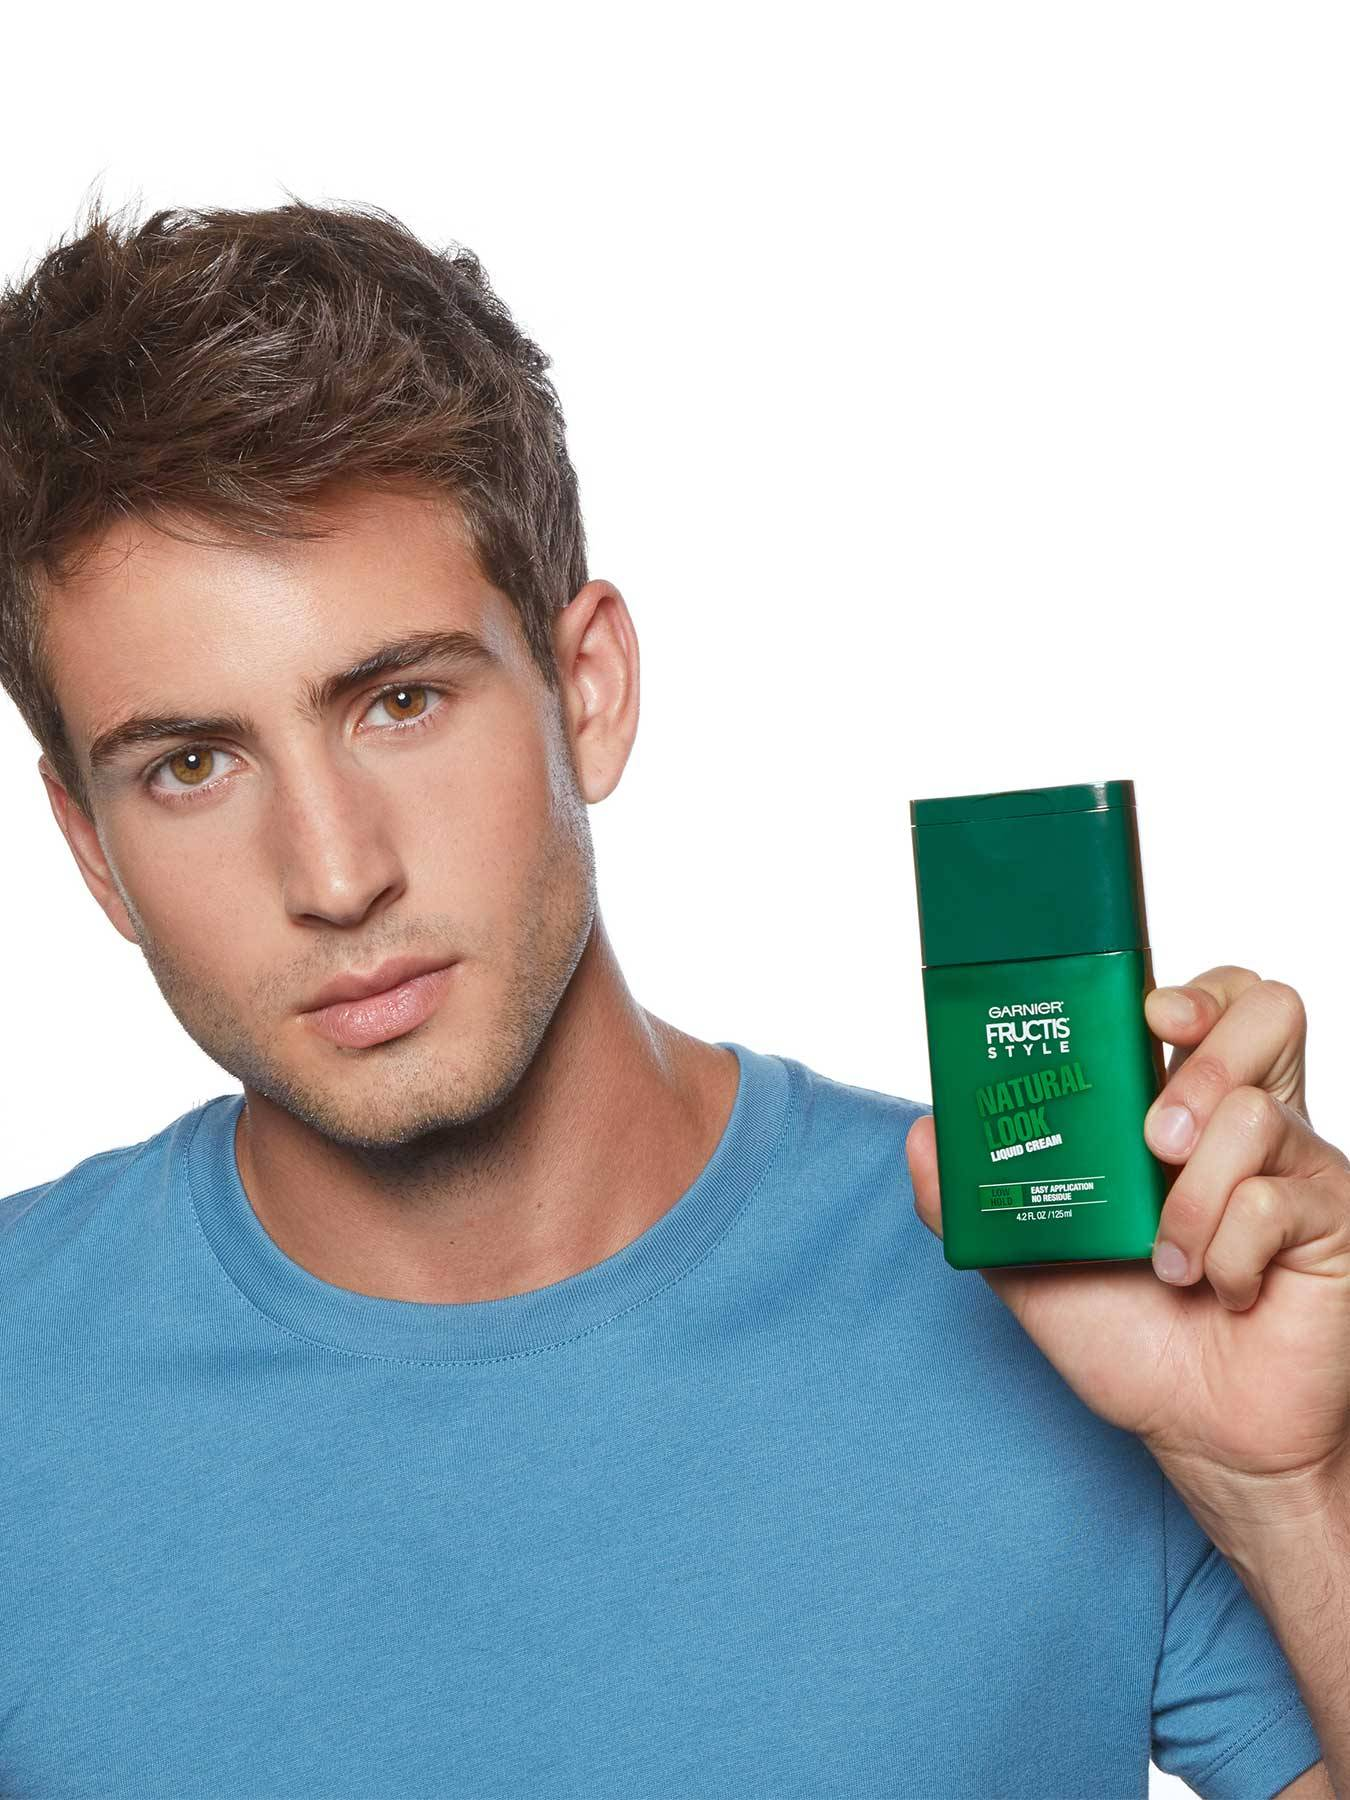 Model holding Natural Look Liquid Hair Cream for Men, No Drying Alcohol.